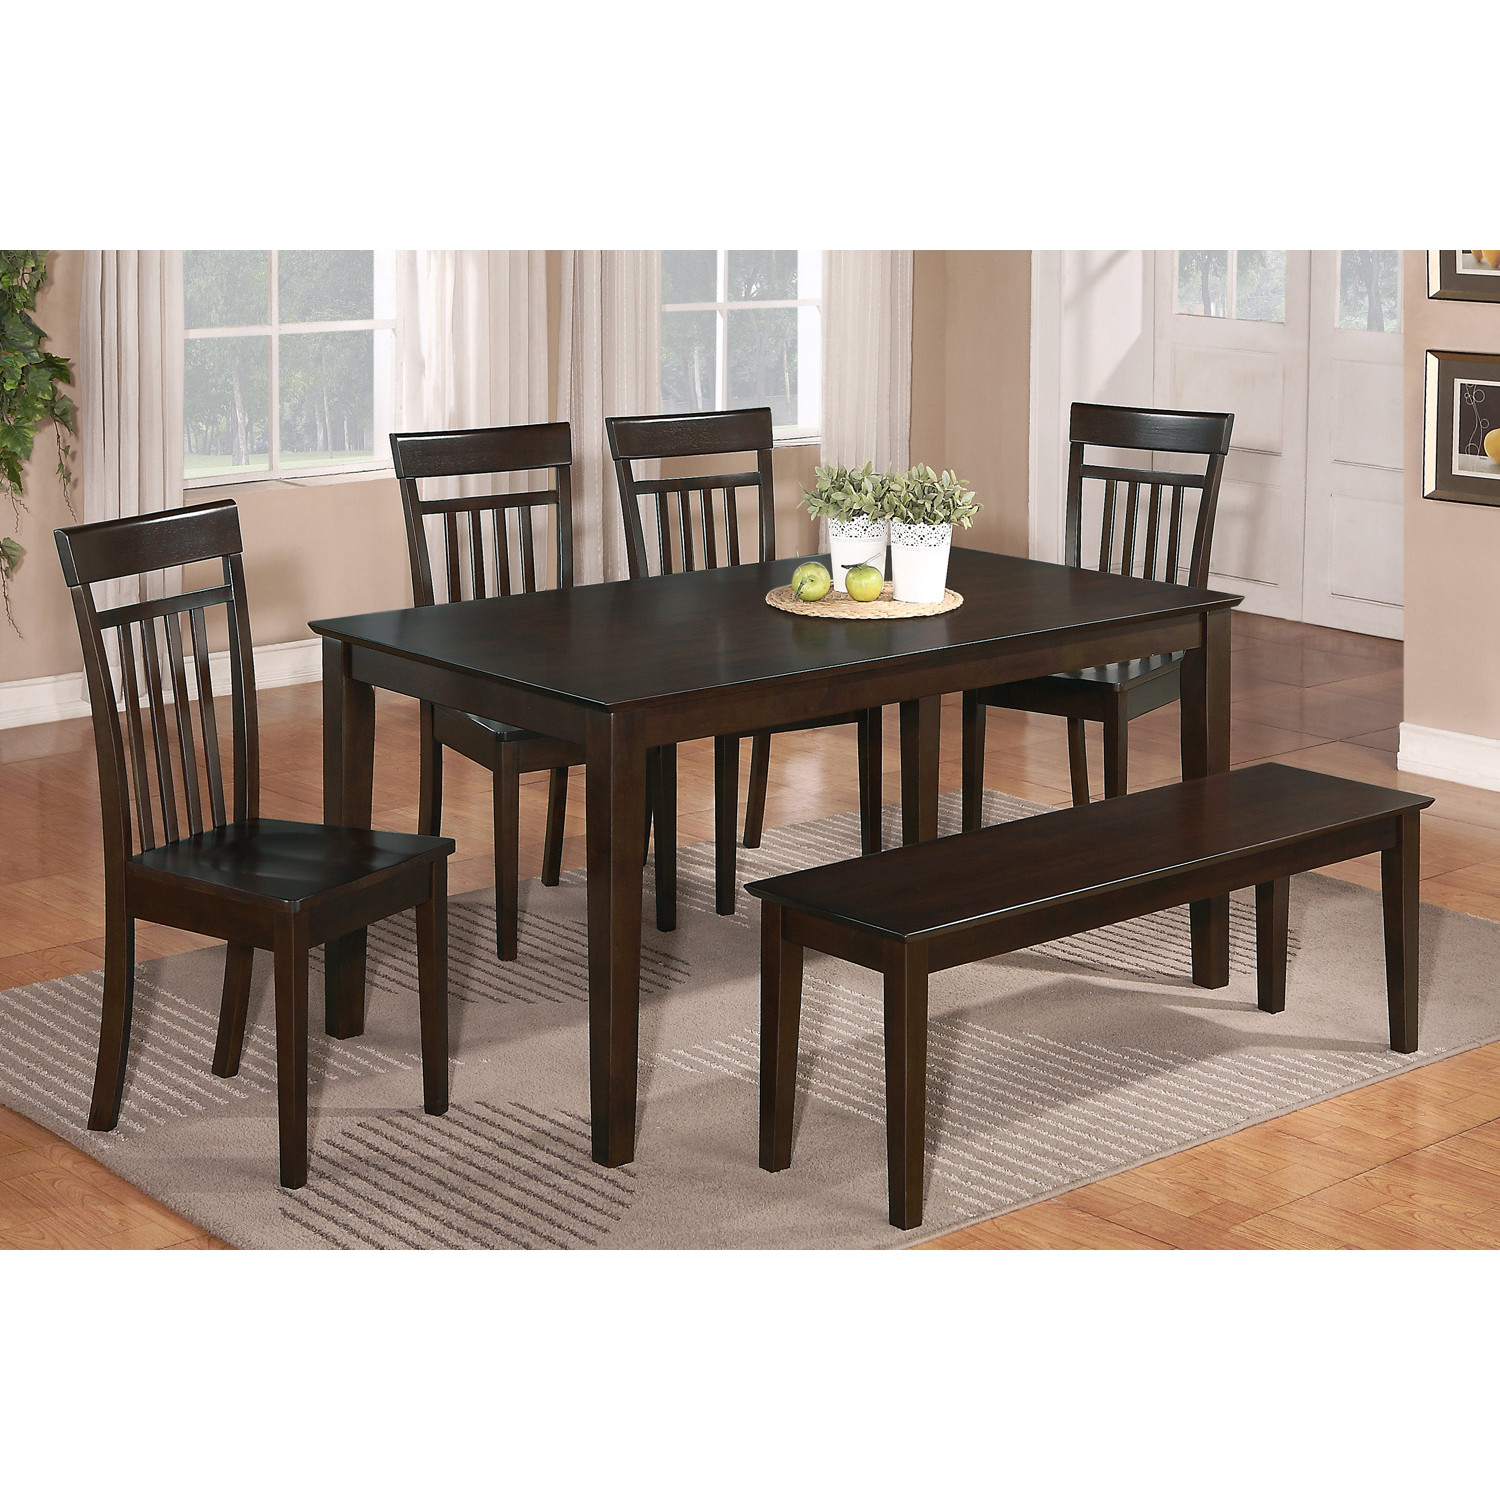 Awesome dinette sets with bench homesfeed for Kitchenette sets furniture